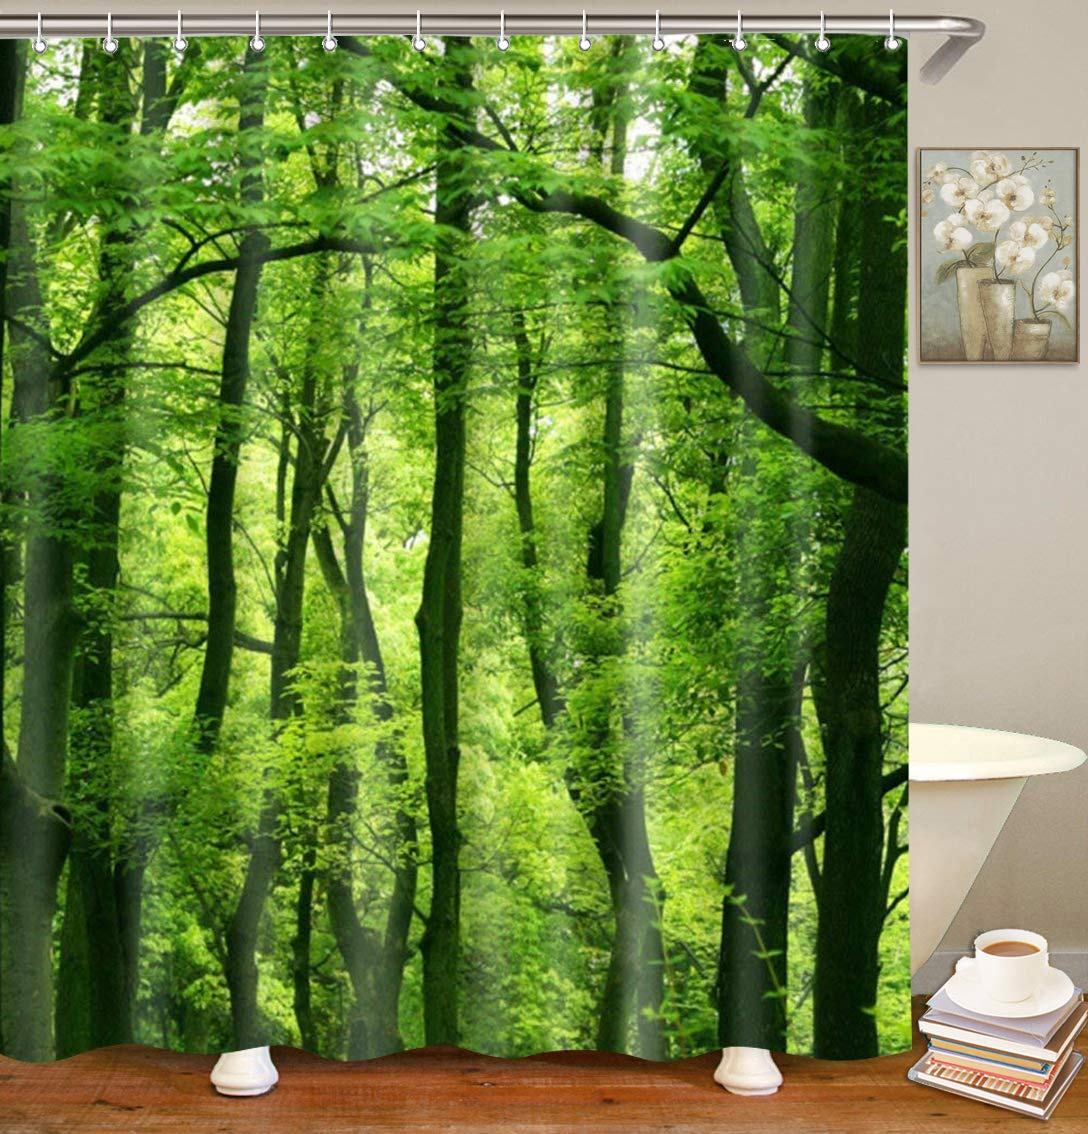 Forest Shower Curtain Set for Bathroom Waterproof Bathroom Curtain with 12 Hooks 72 by 72 inches, Green by Dynabit